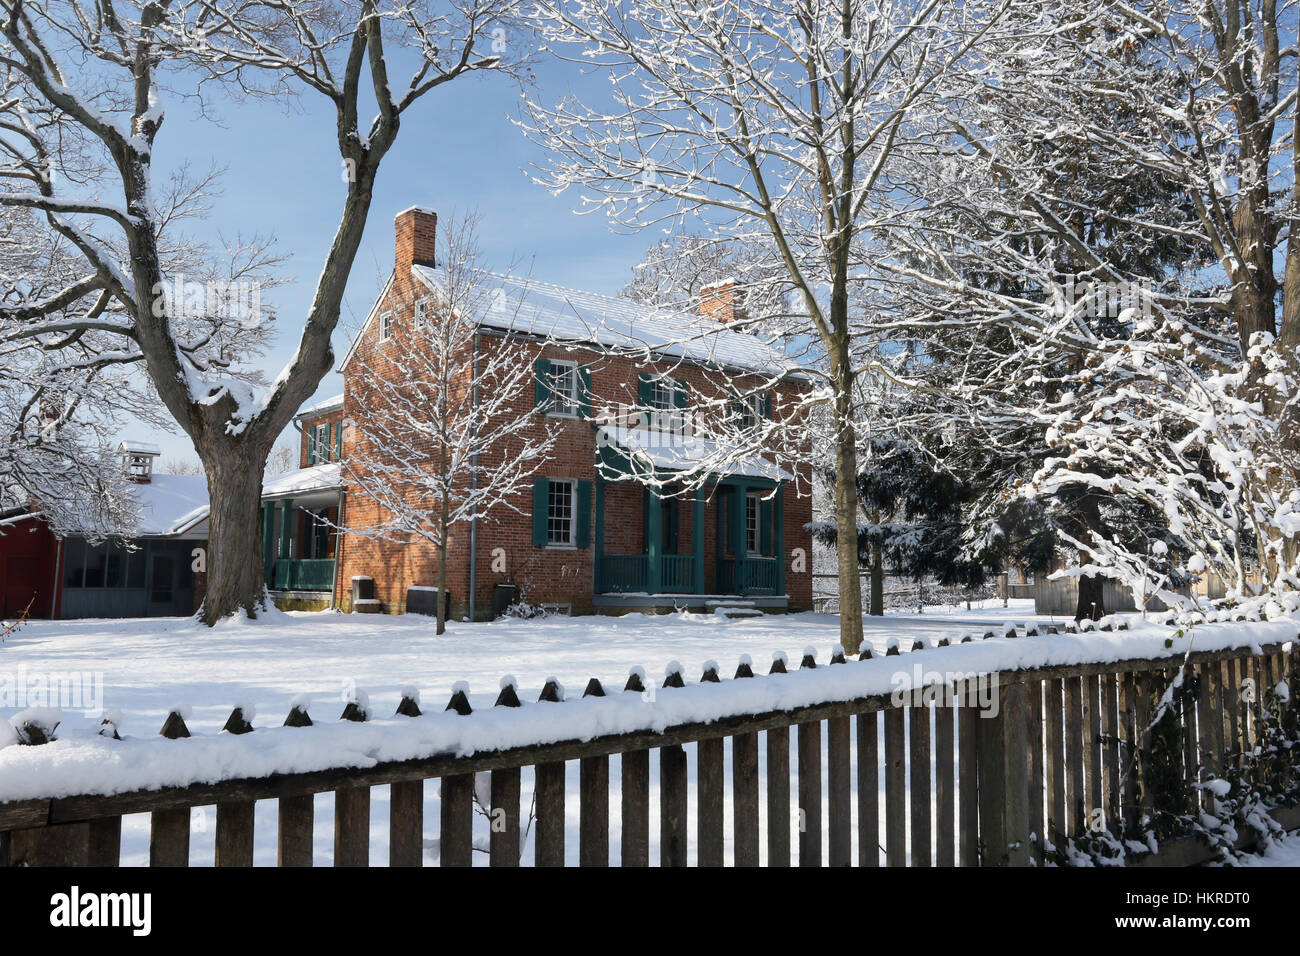 Daniel Arnold House en hiver. À Daniel Arnold ferme historique, Carriage Hill Metropark, Huber Heights, Dayton, Photo Stock